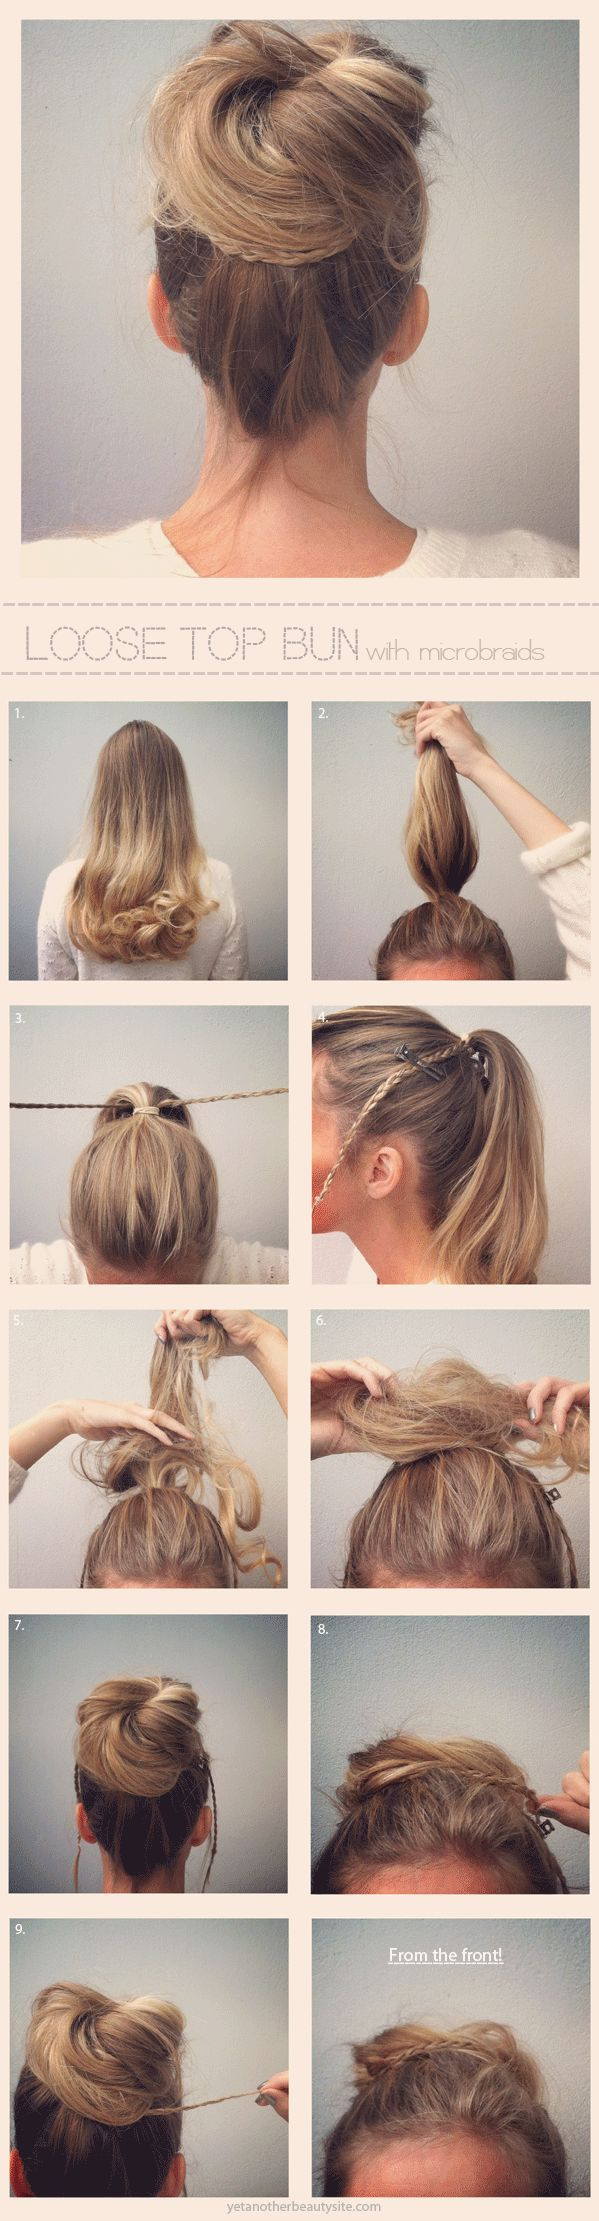 this website is seriosuly amazing! so many hair ideas for medium/long hair.